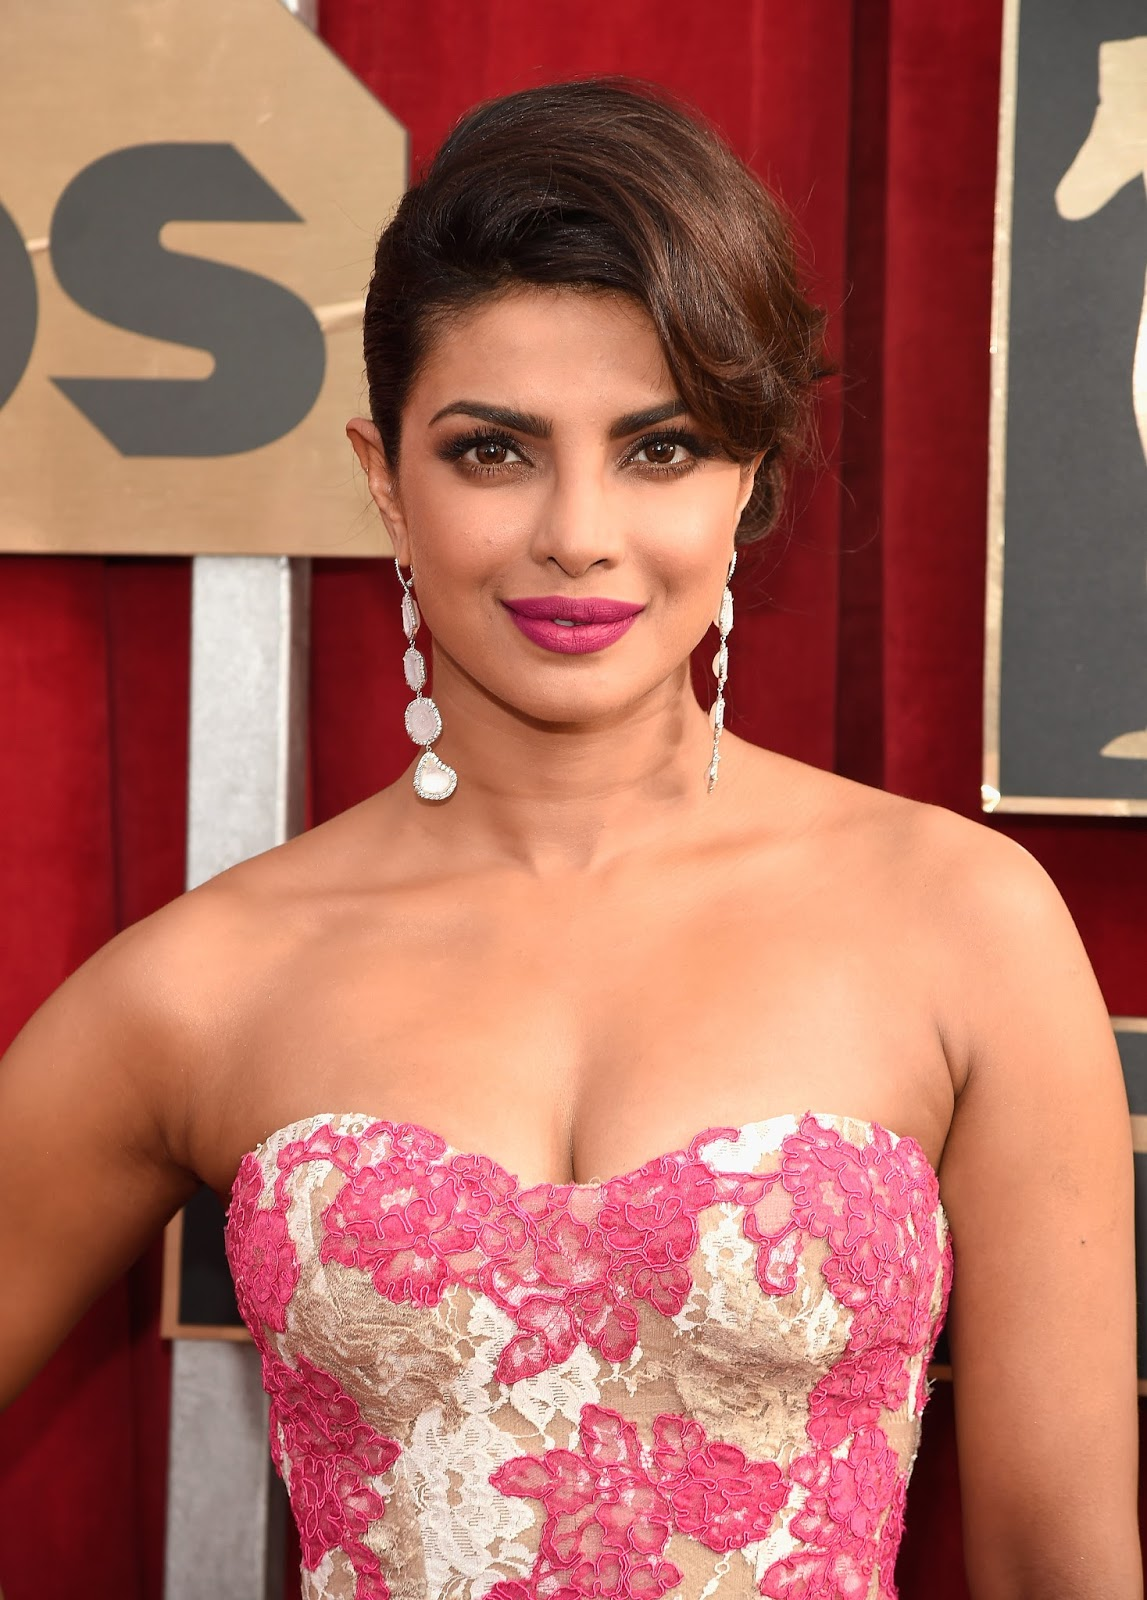 Actress Priyanka Chopra Hot And Spicy At Oscars 2016 -7075